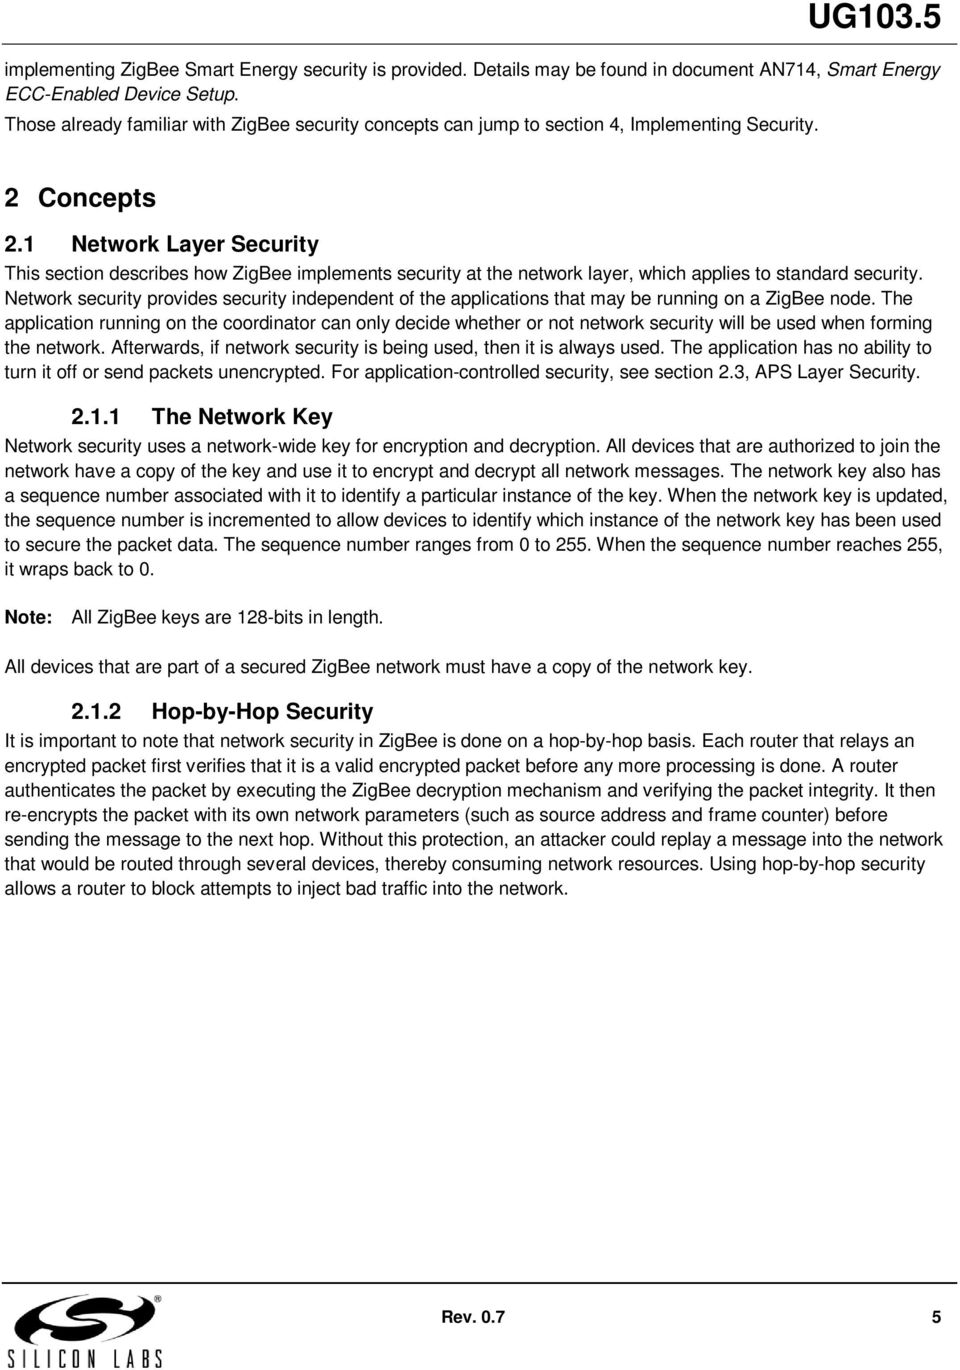 1 Network Layer Security This section describes how ZigBee implements security at the network layer, which applies to standard security.